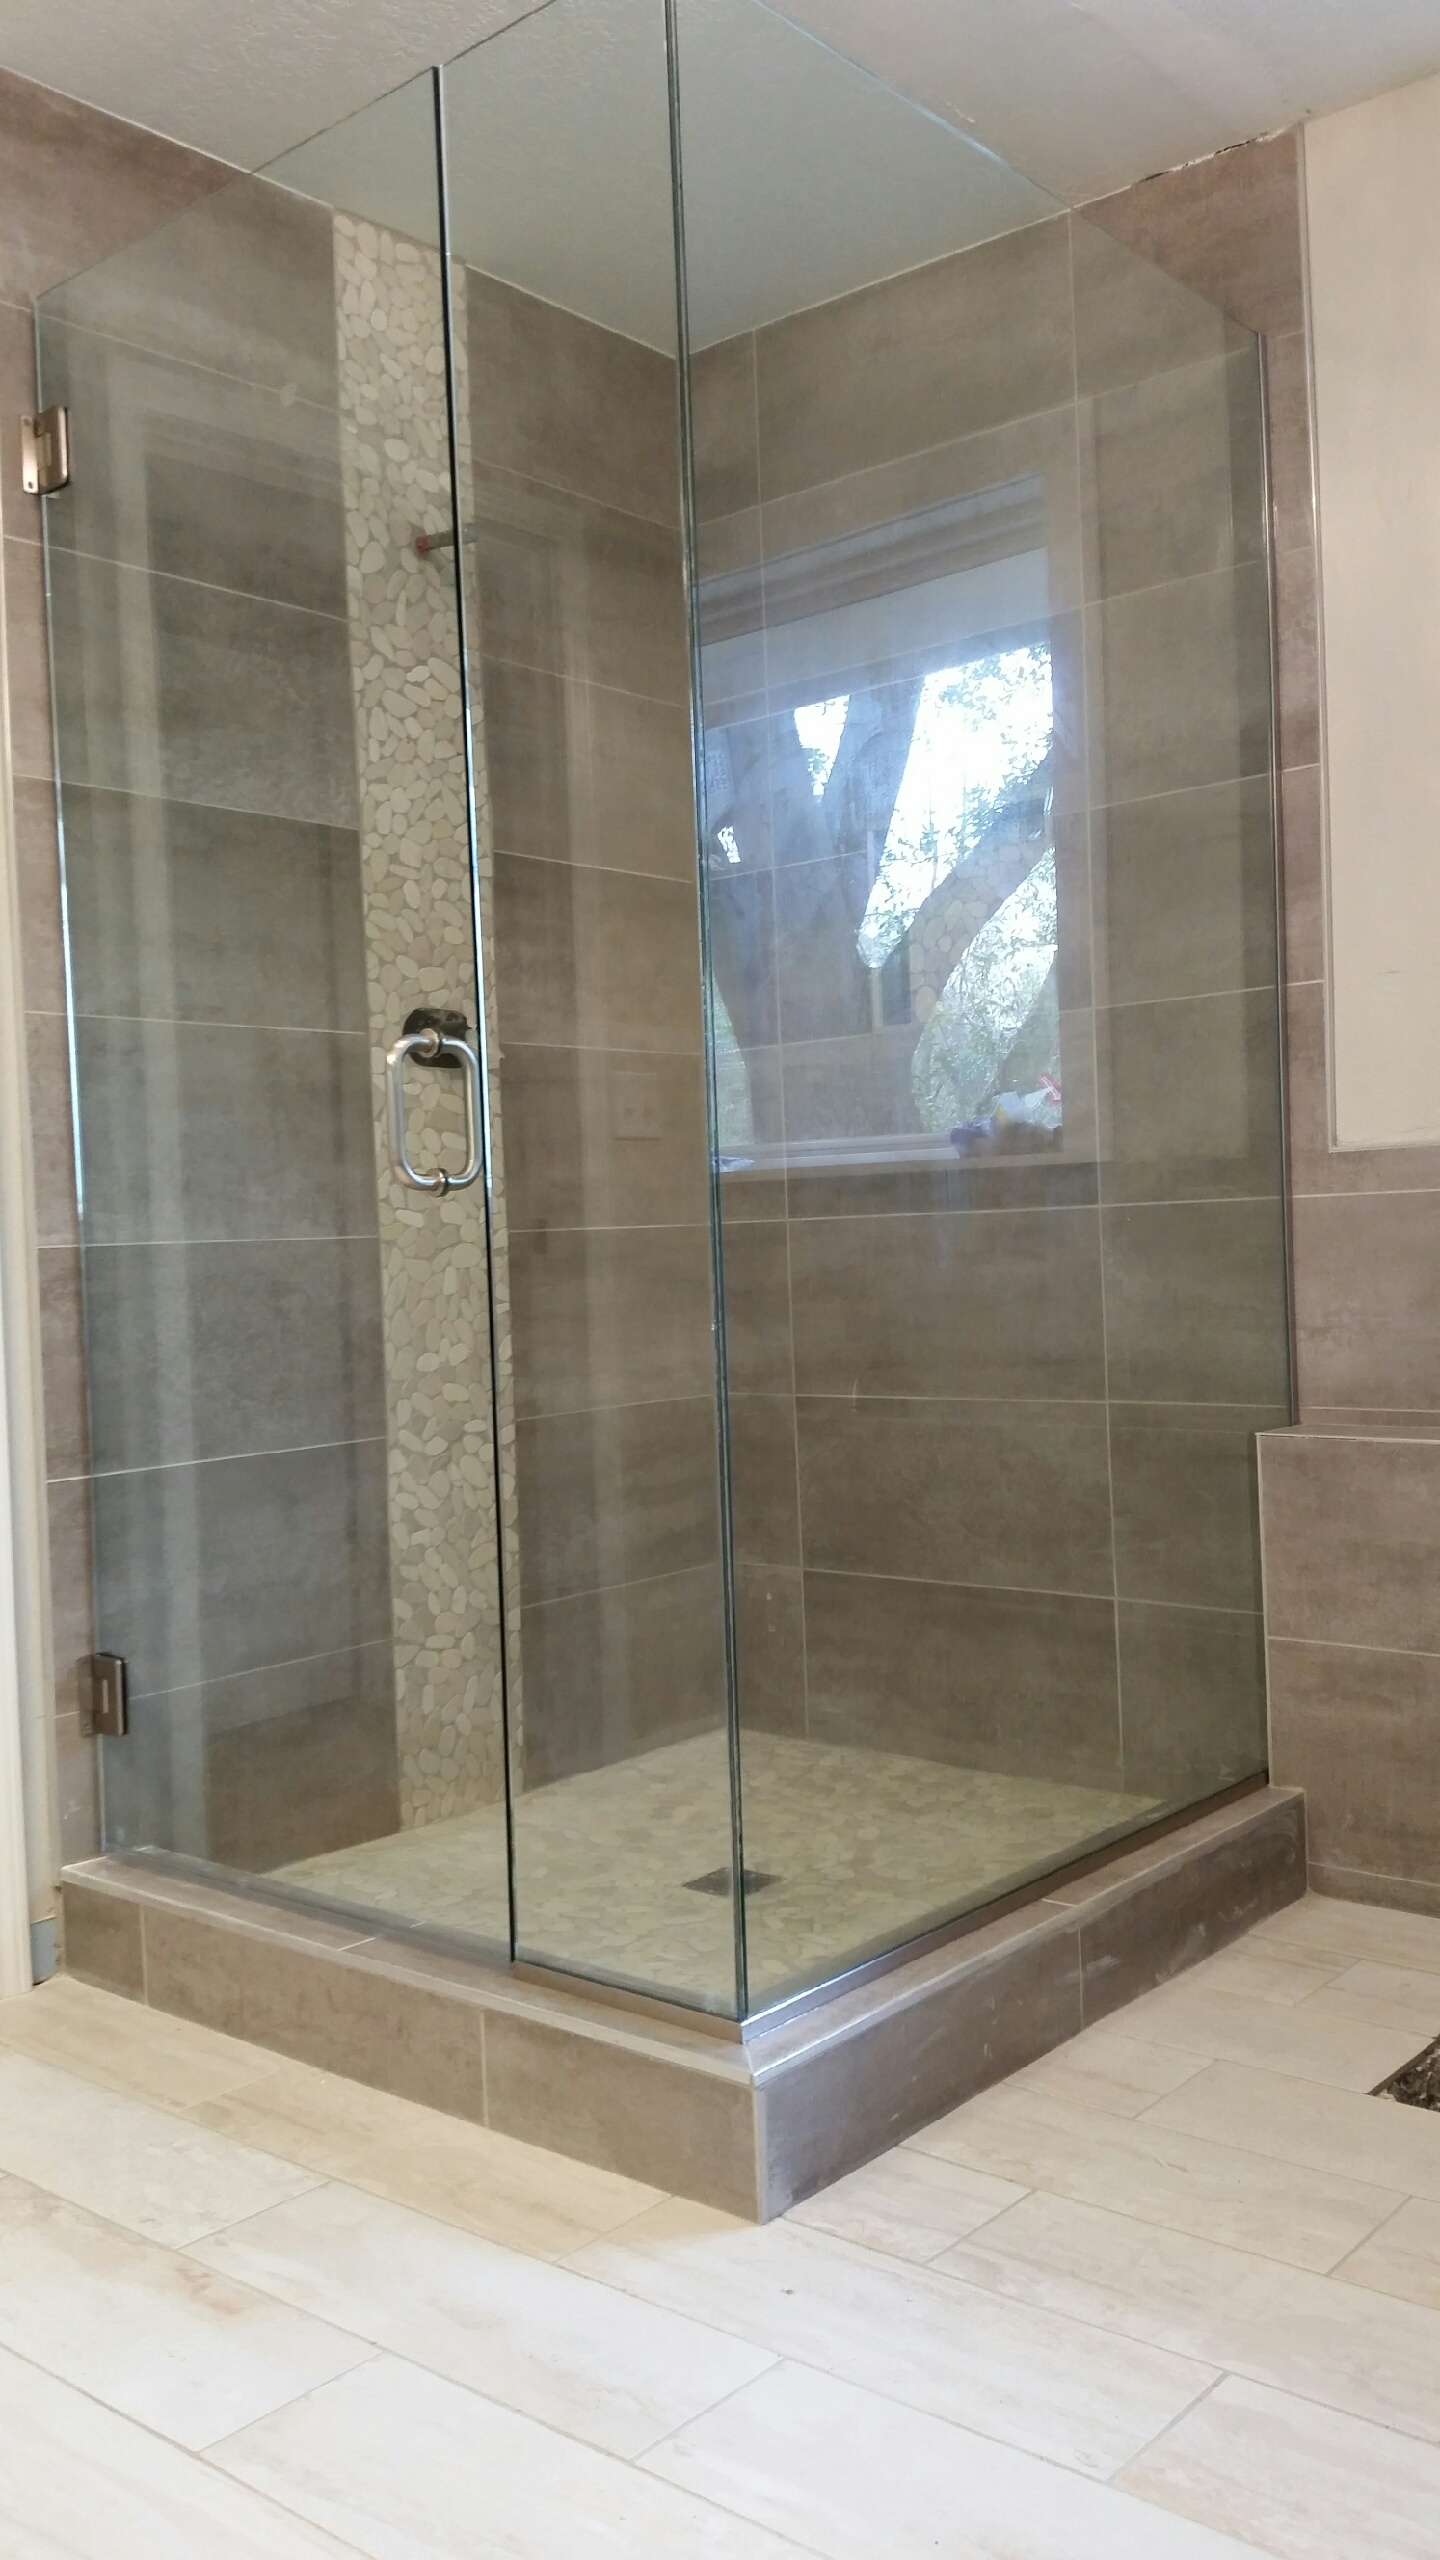 Frameless hinged shower enclosure